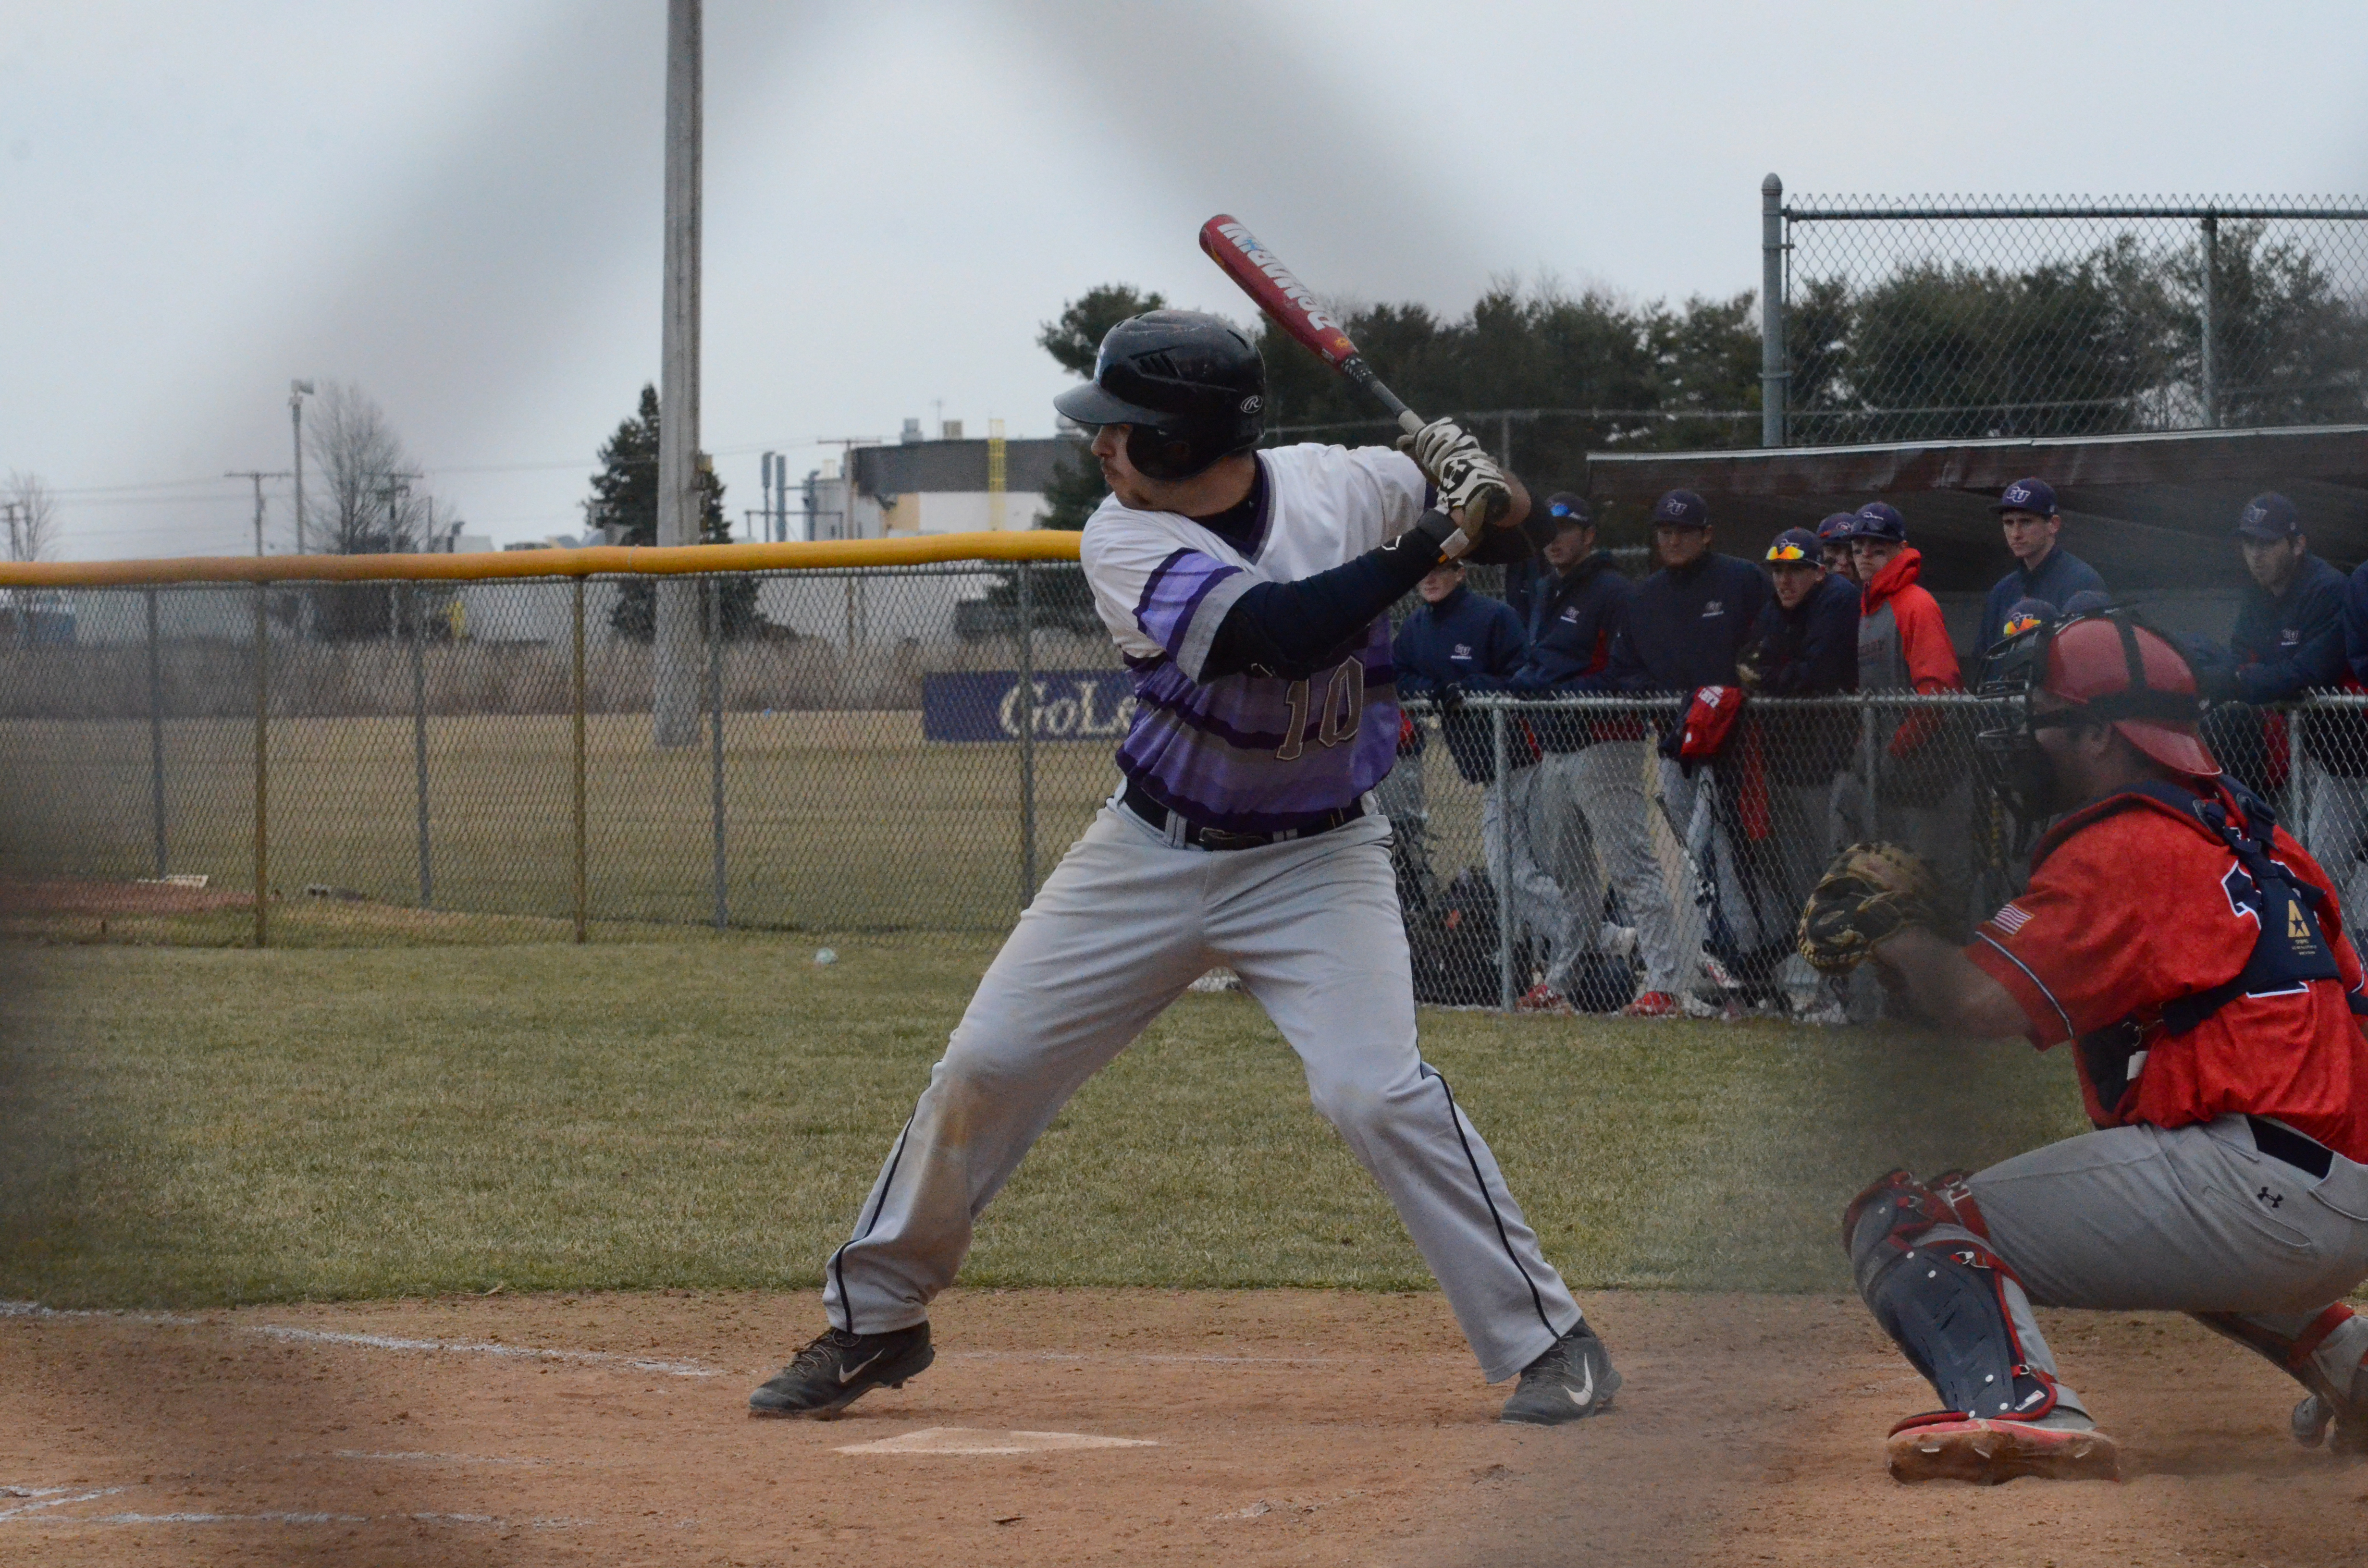 A Goshen player prepares to swing at an oncoming pitch during a game